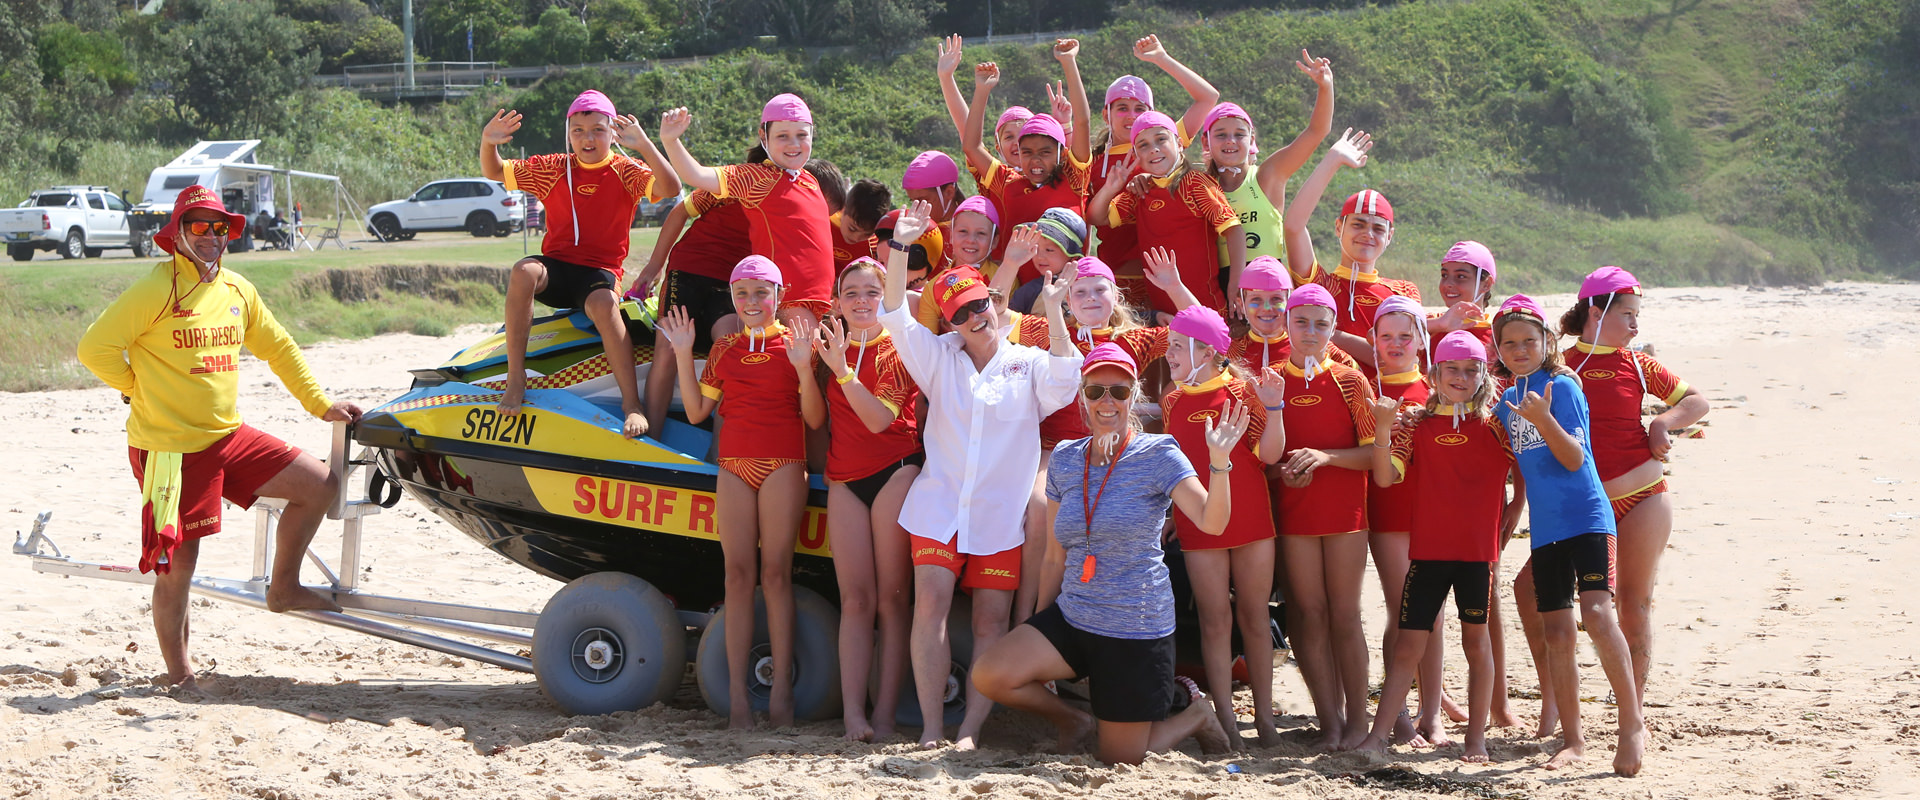 Nippers on surf craft on beach